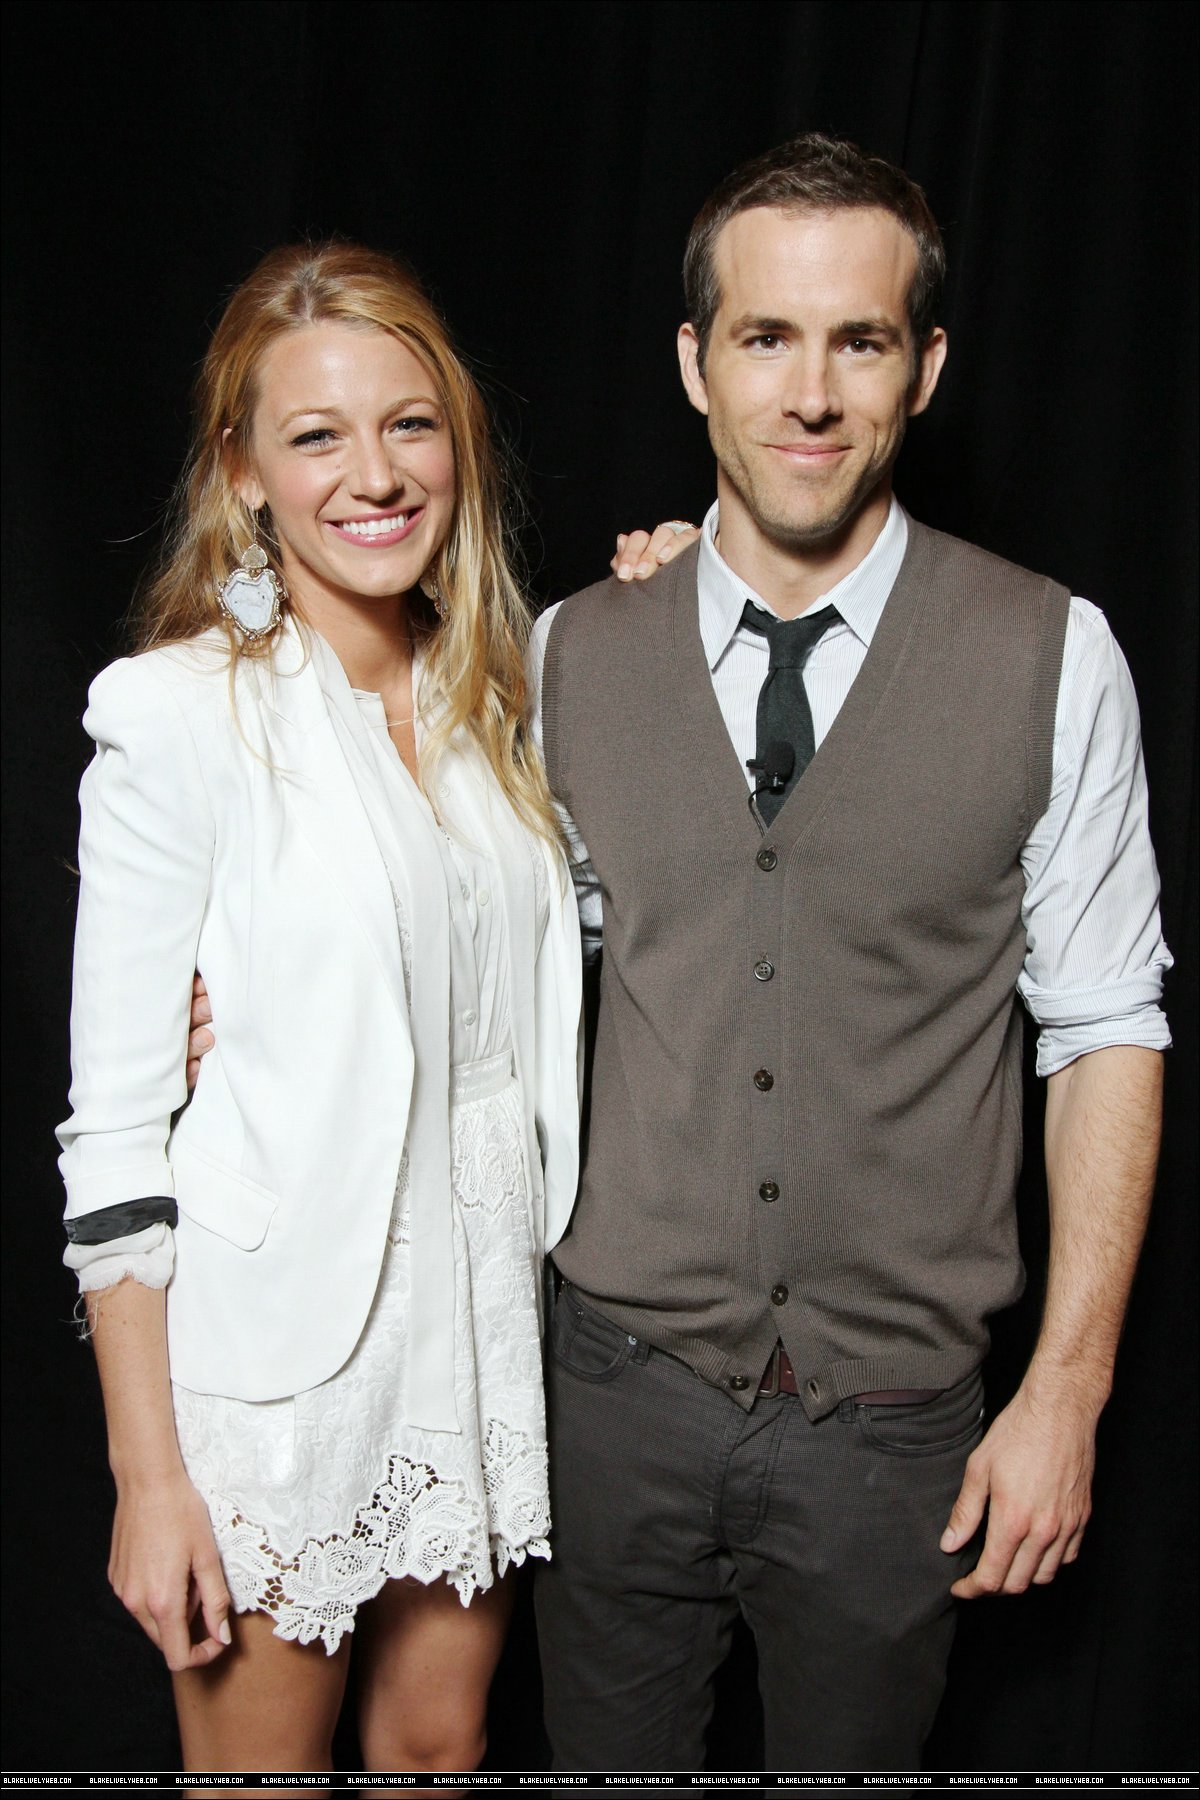 Ryan Reynolds And Blake Lively Cinema Con 2011 - Blak...